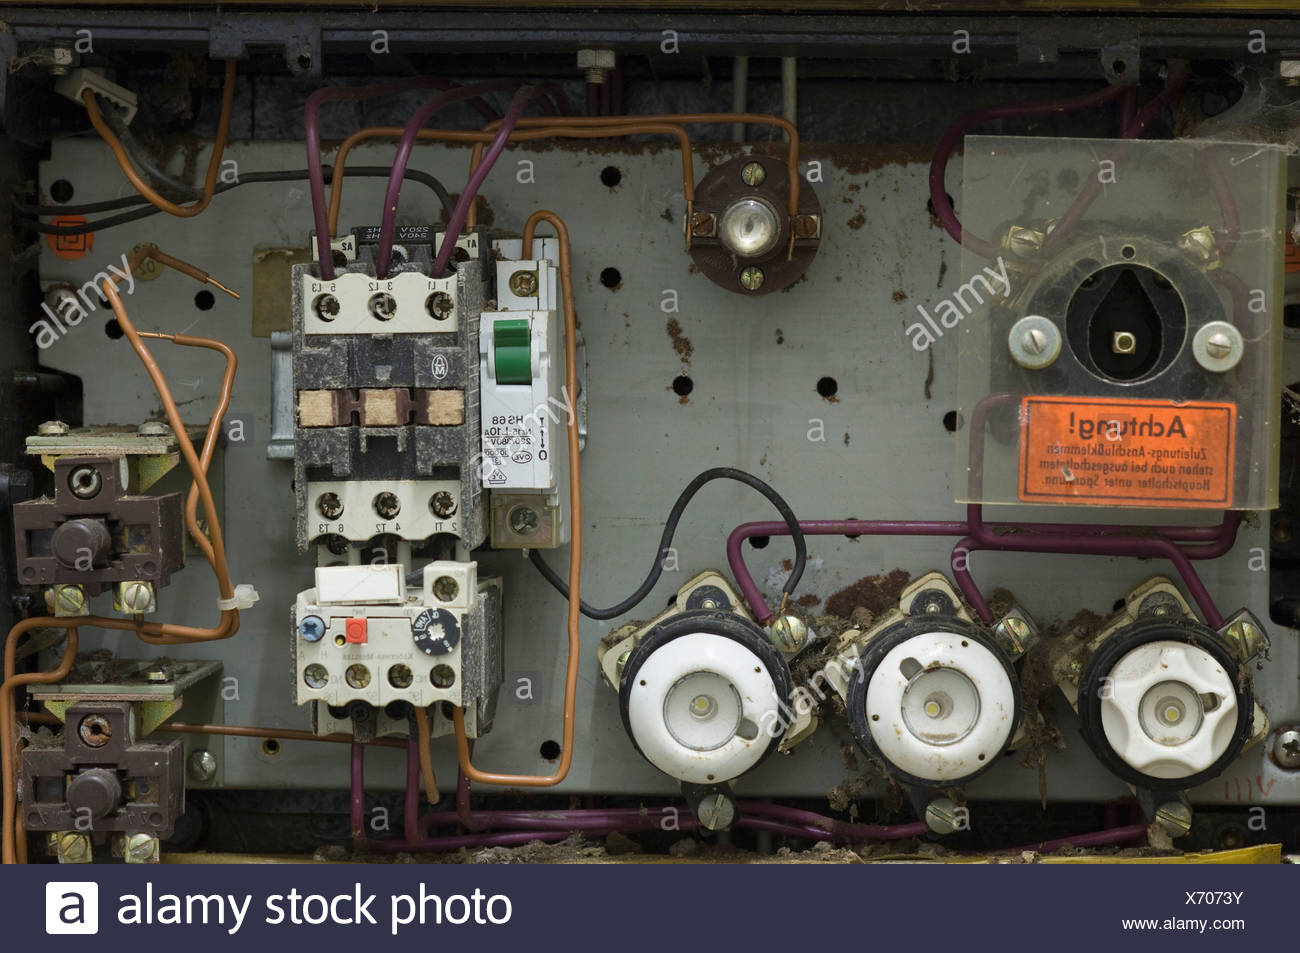 German Fuse Box Easy Wiring Diagrams For Car Germany Antique Old Ruined Stock Photo 279674079 Alamy Rh Com Automotive Types